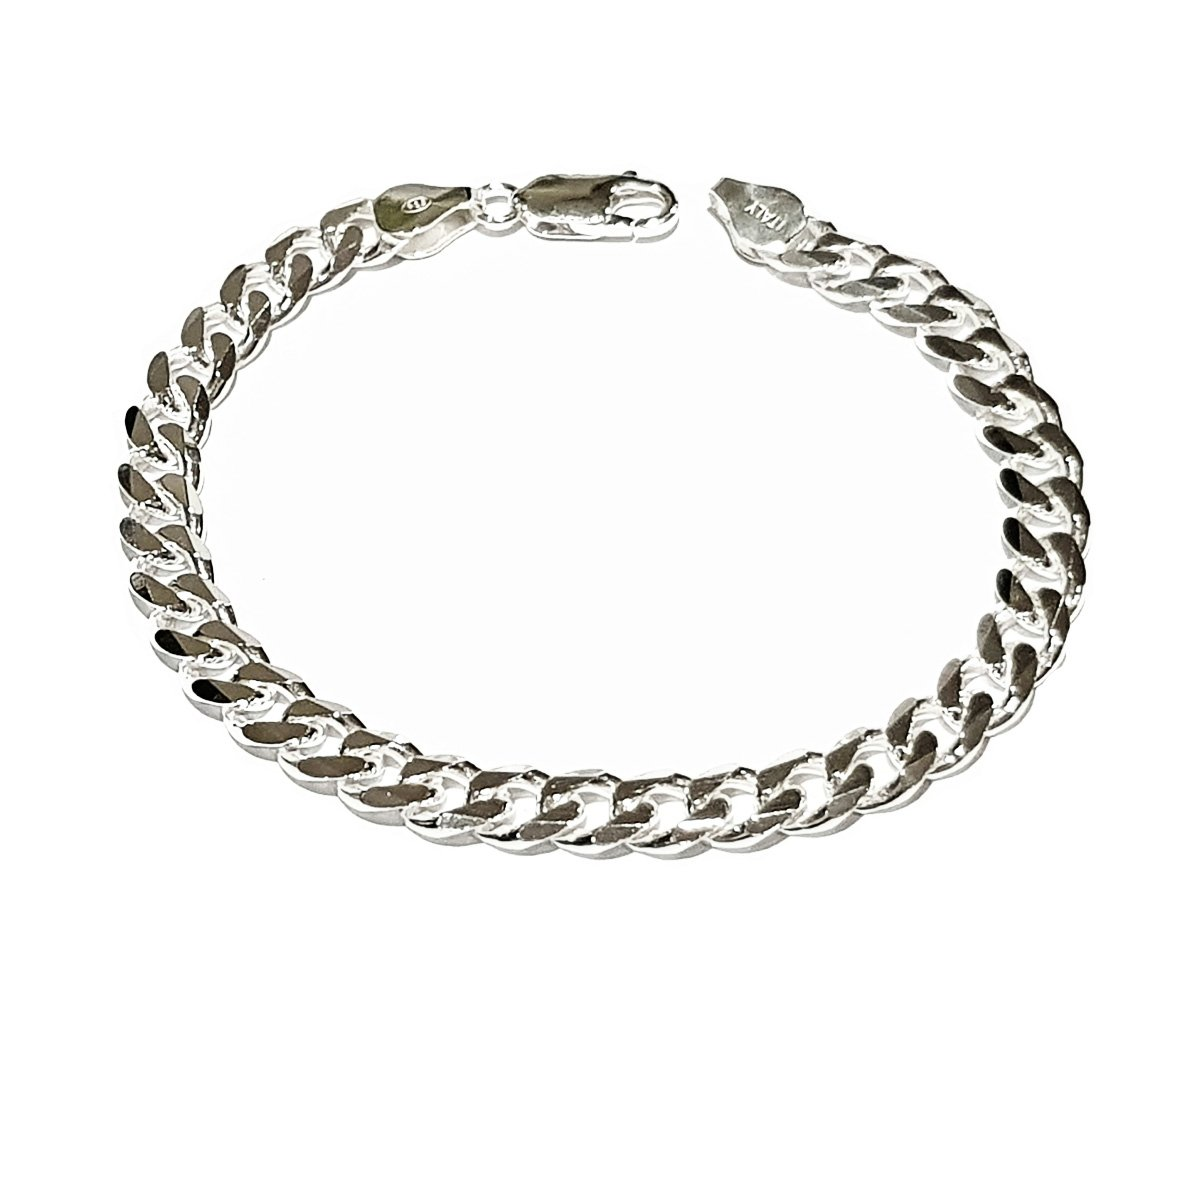 TreasureBay Mens Solid 925 Sterling Silver Chain Bracelet - 7mm Width  Available in 18cm, 19 5cm, 21cm and 23cm